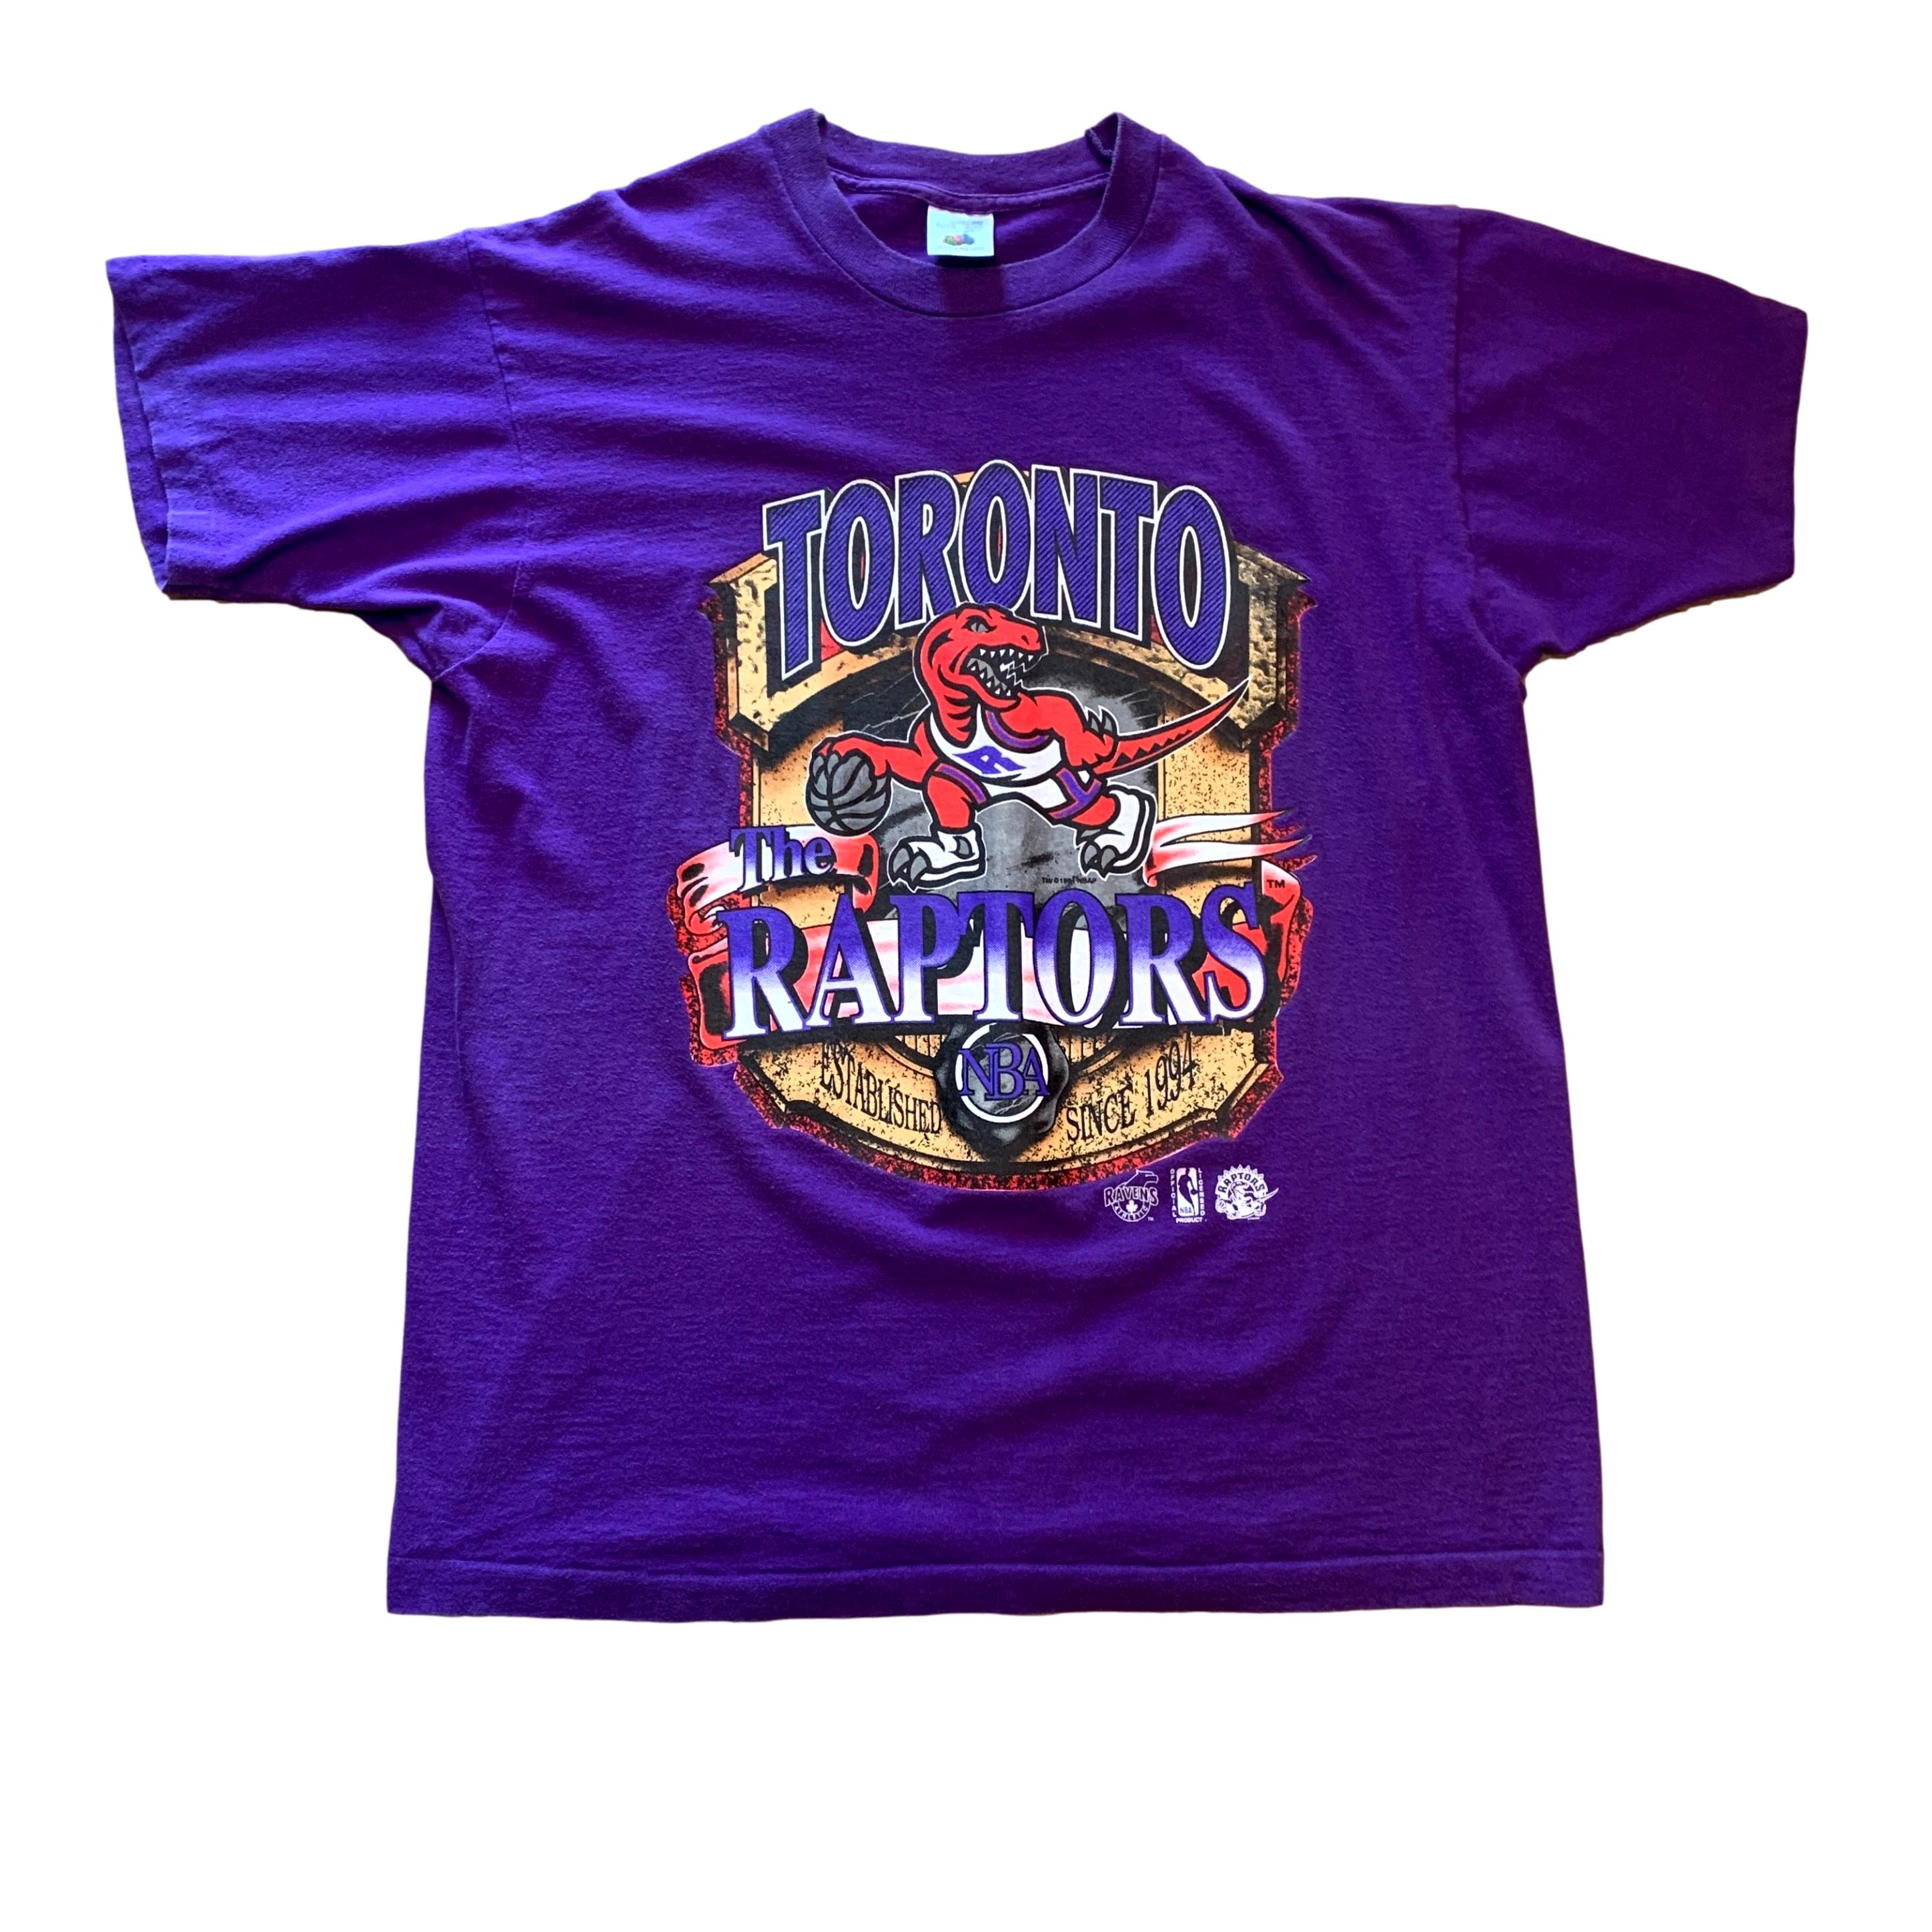 Vintage Toronto Raptors NBA Basketball T Shirt (XL)